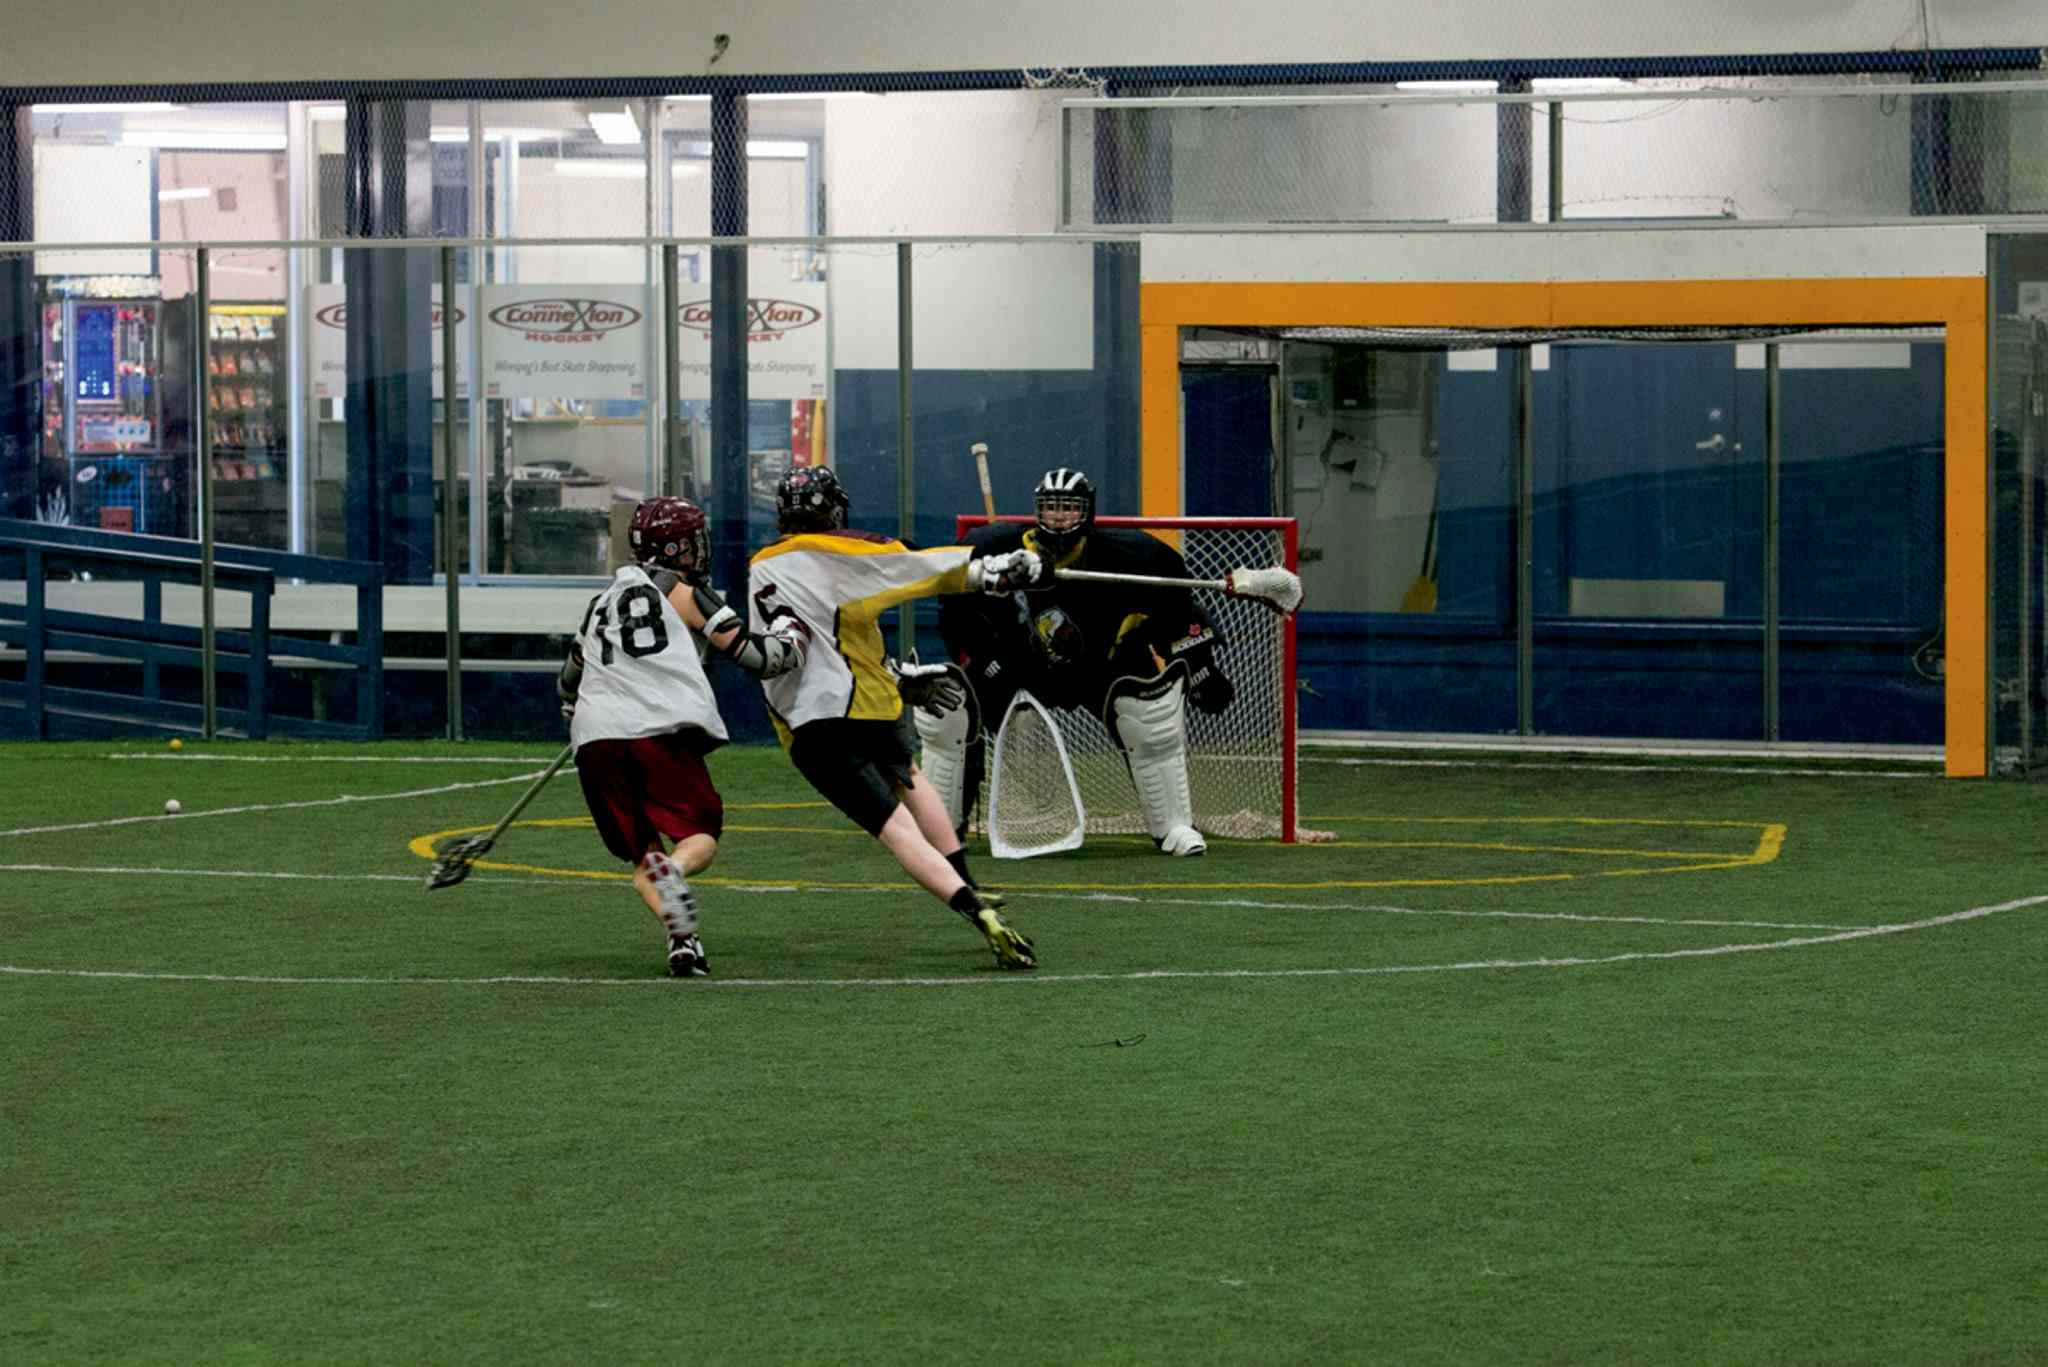 The Manitoba Gryphons lacrosse team changed its name to the Manitoba Blizzard as part of its rebranding project.